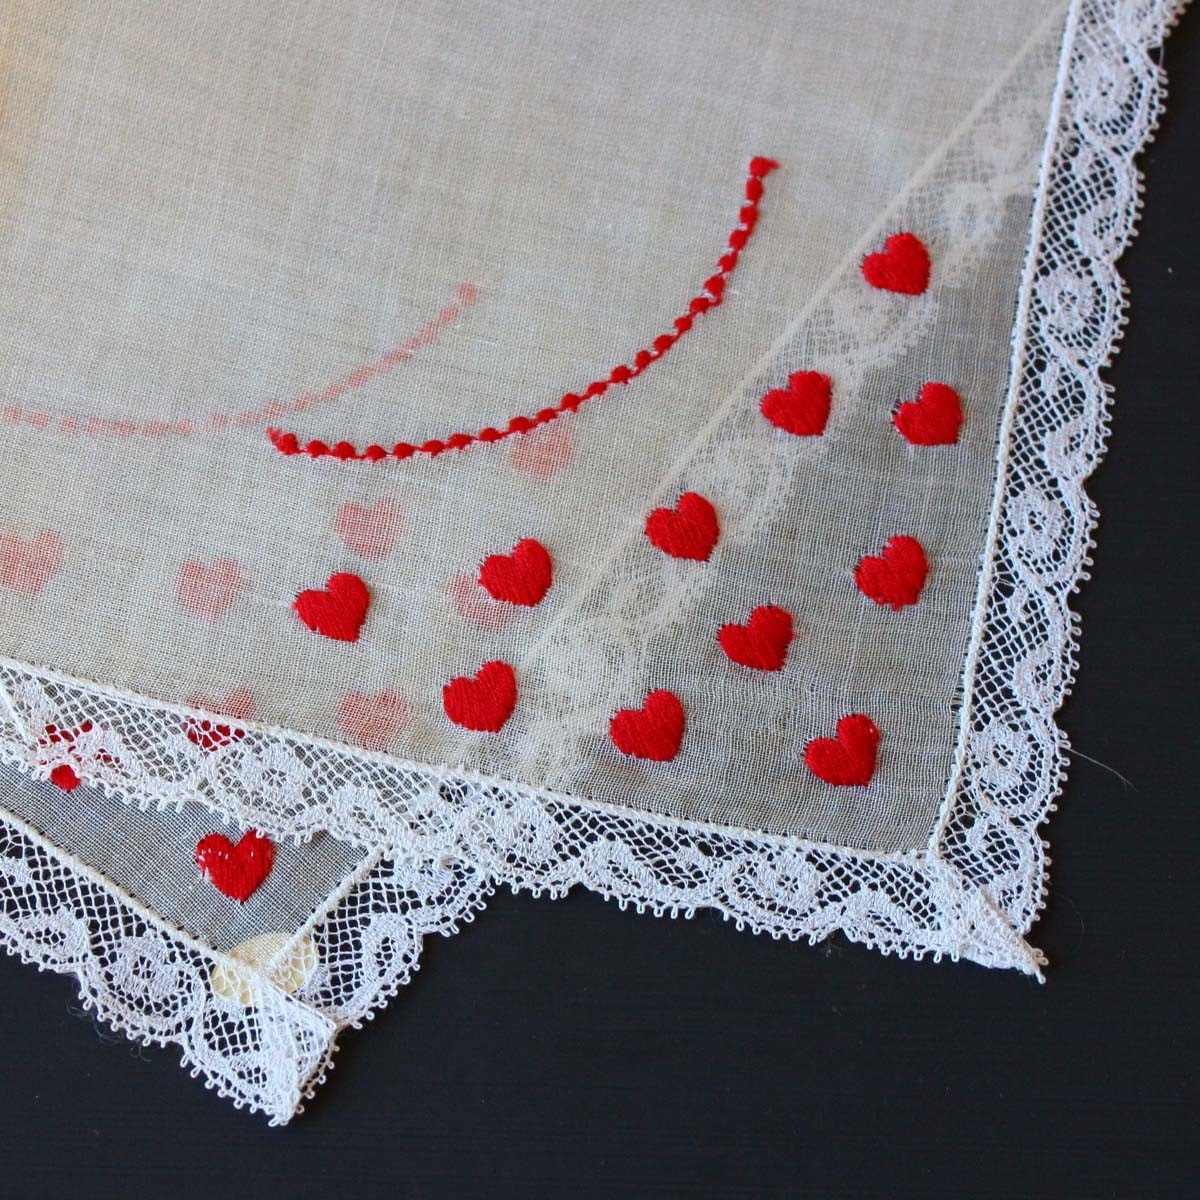 Vintage Handkerchief with Embroidered Hearts - backstashandbygones